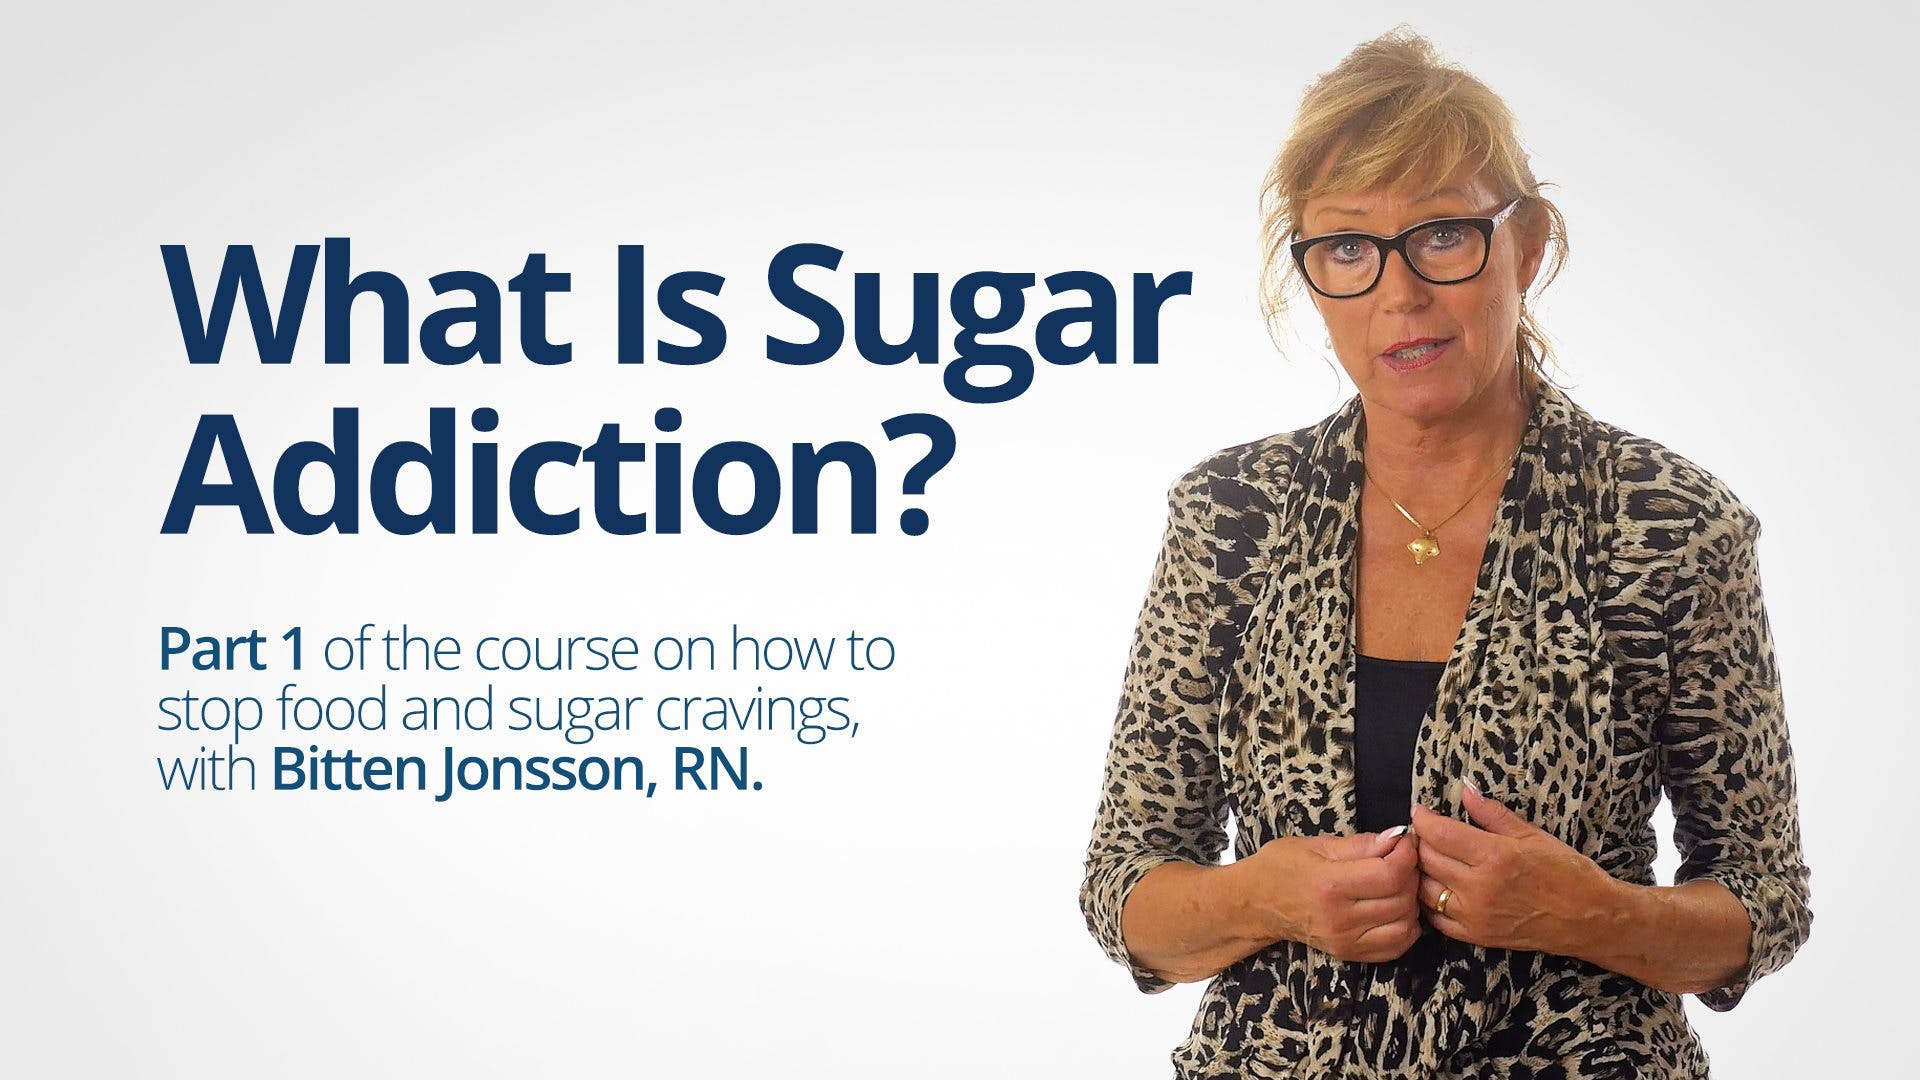 What Is Sugar Addiction?